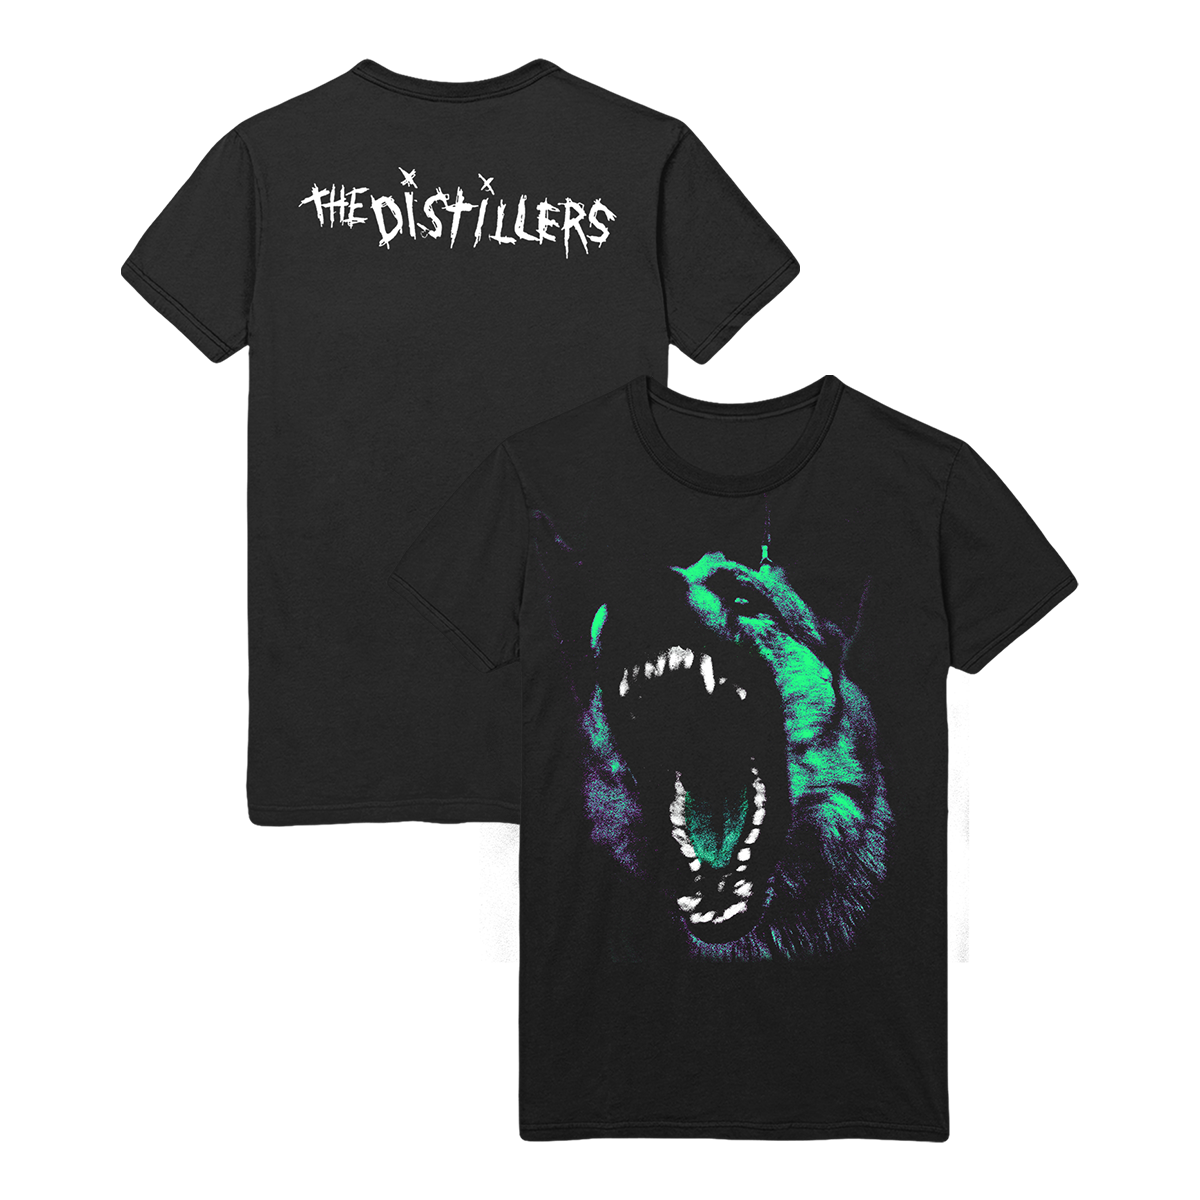 The Distillers - 20th Anniversary Self-Titled Tee